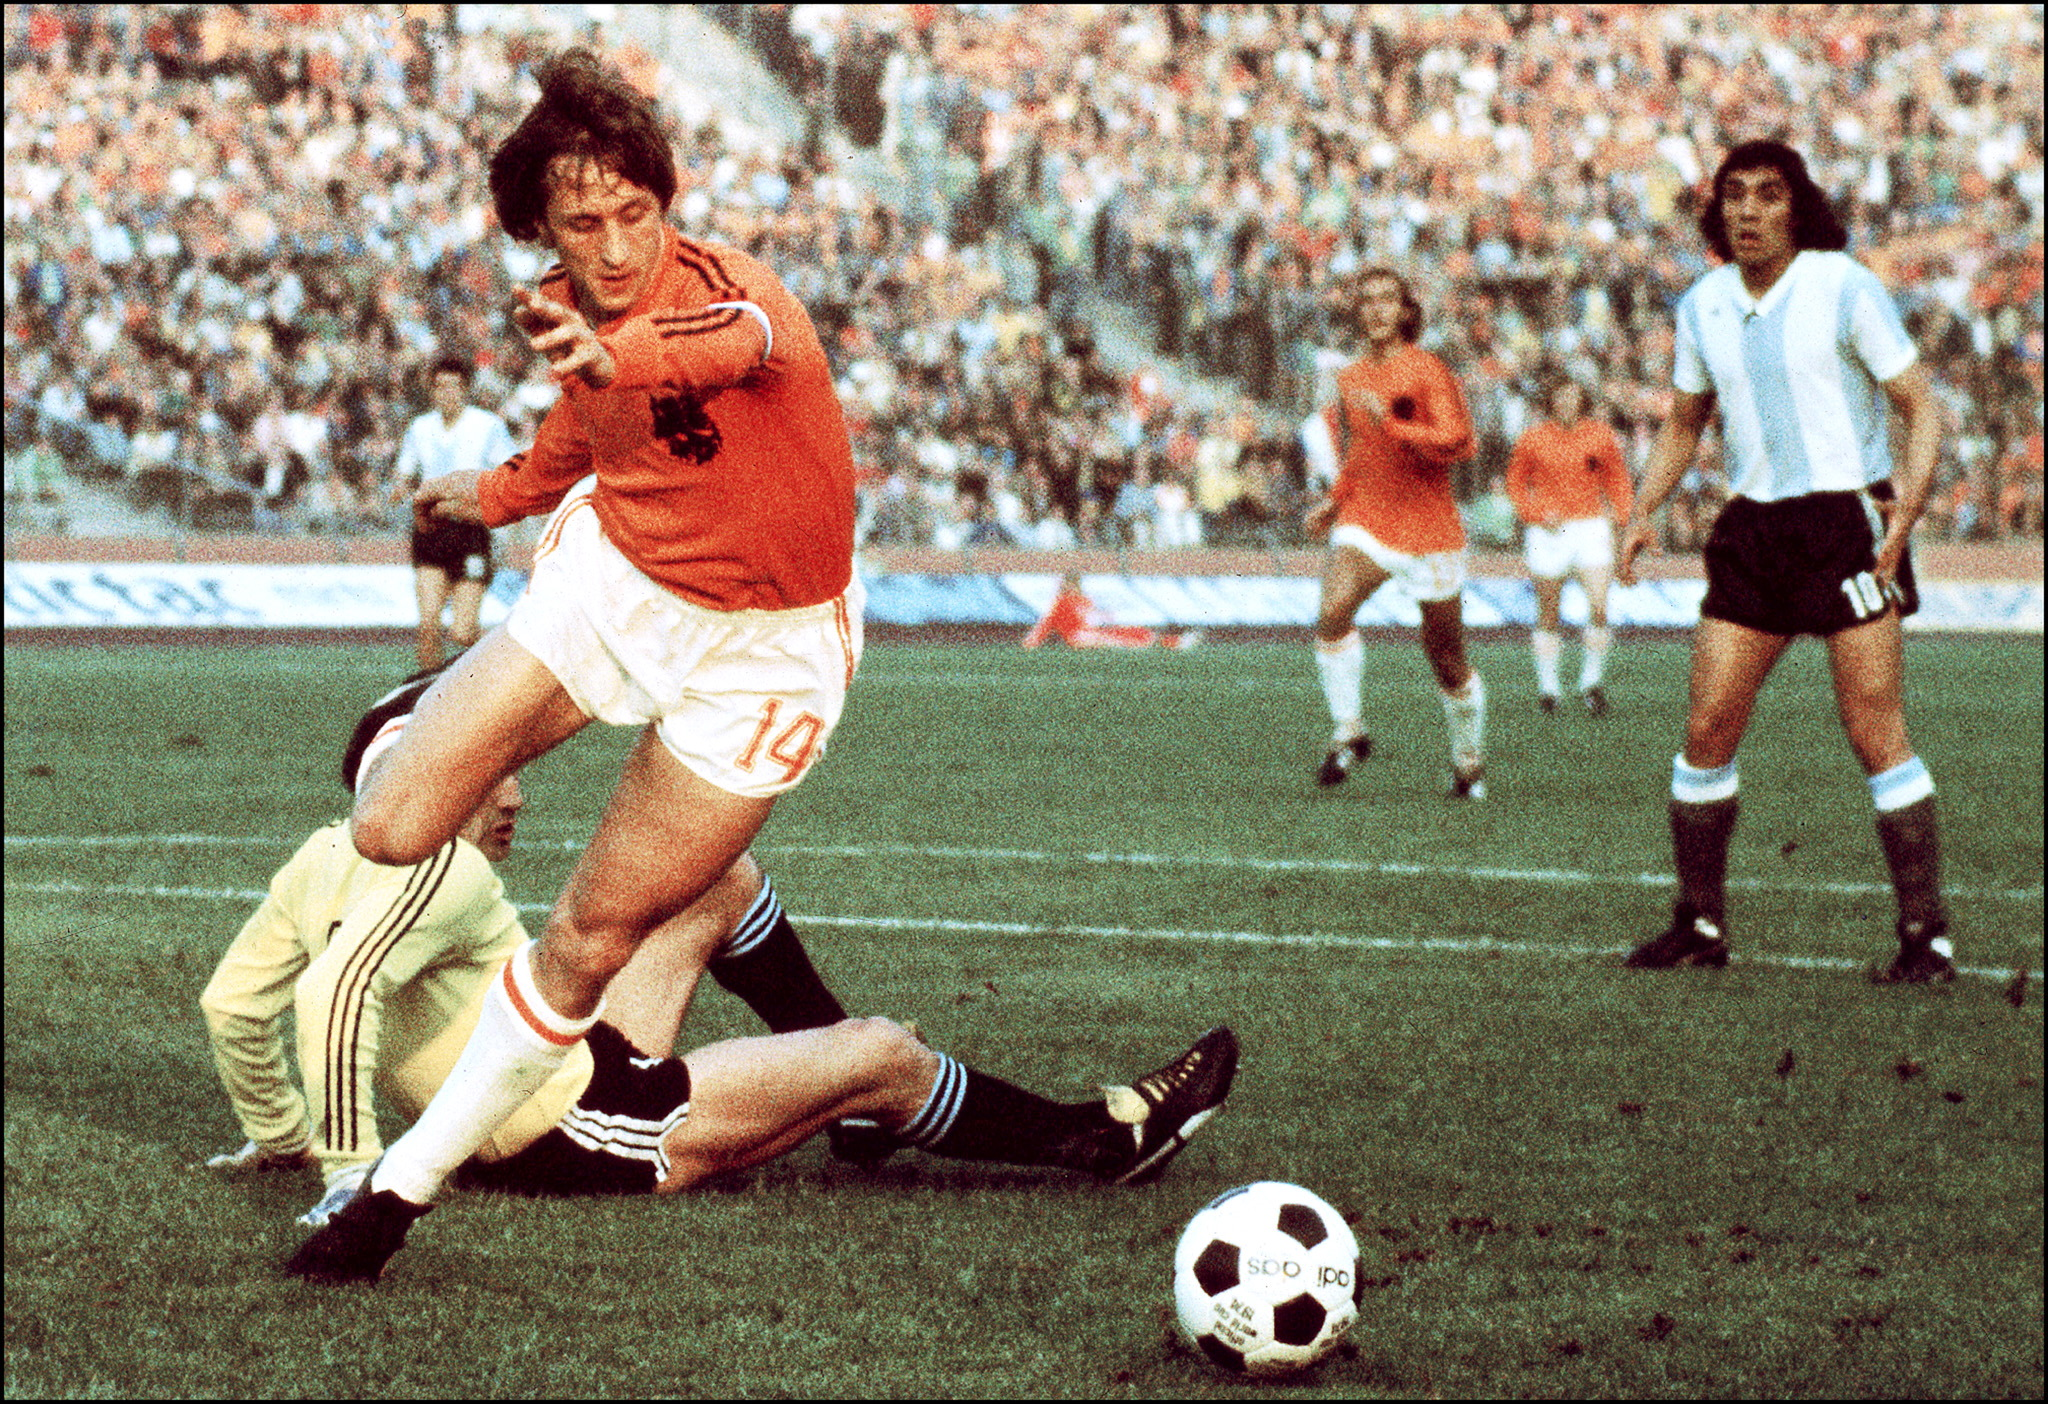 The King. Johan Cruyff in his pomp at the 1974 World Cup finals.